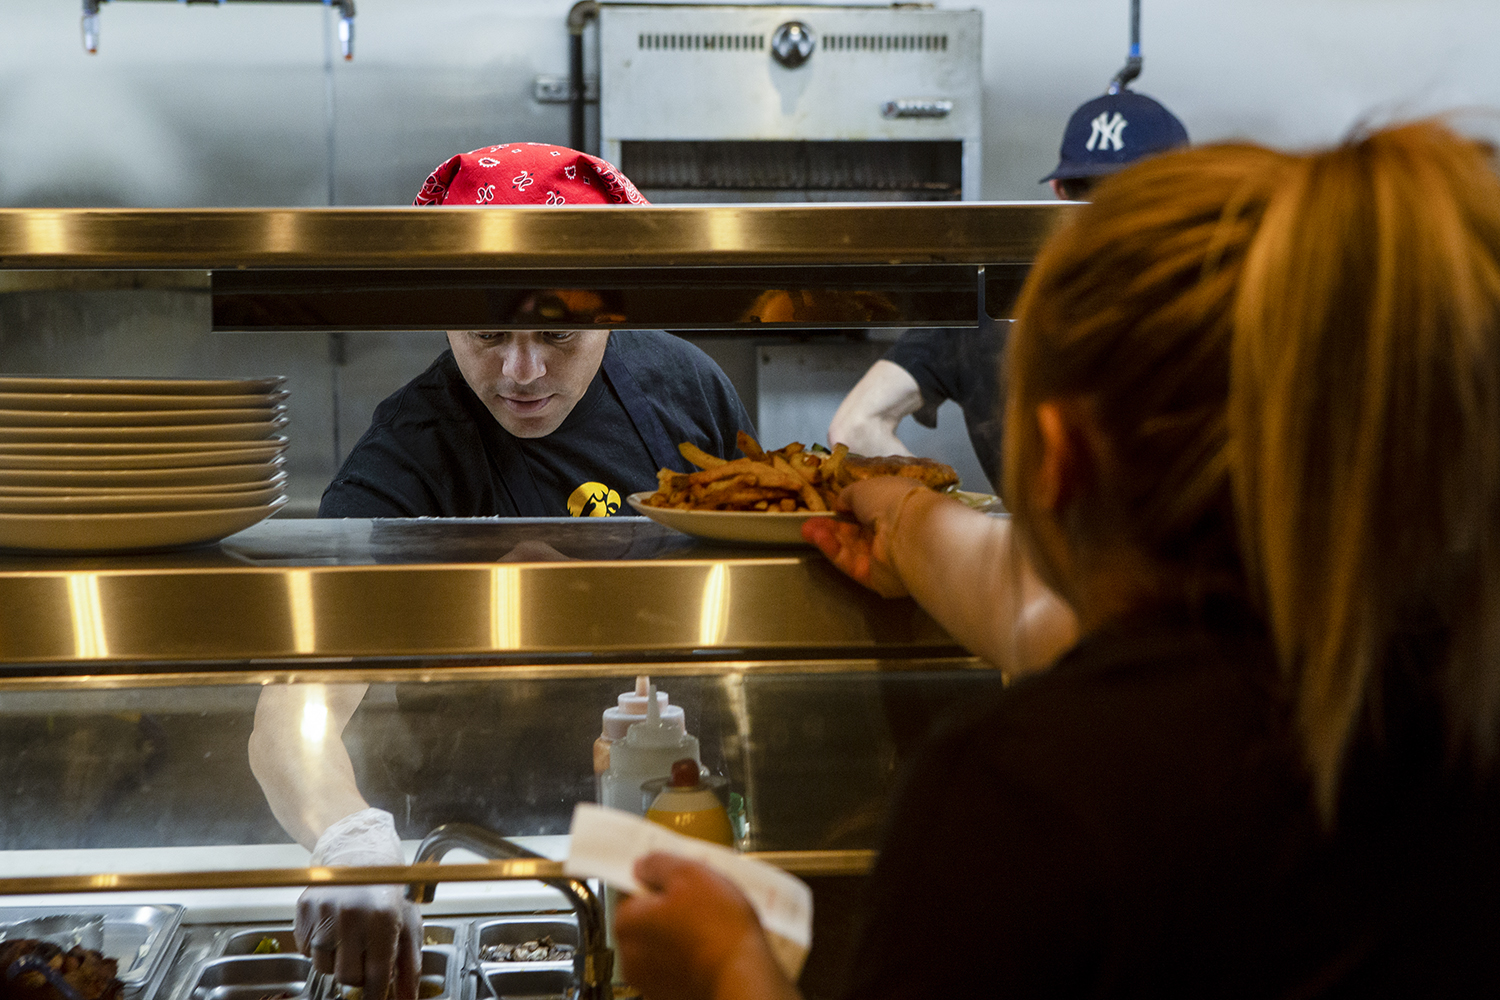 A server retrieves a dish from the kitchen at the Marion location of Short's Burgers & Shine on Thursday, Oct. 24 2019. This is the first Short's location outside of the Iowa City area.